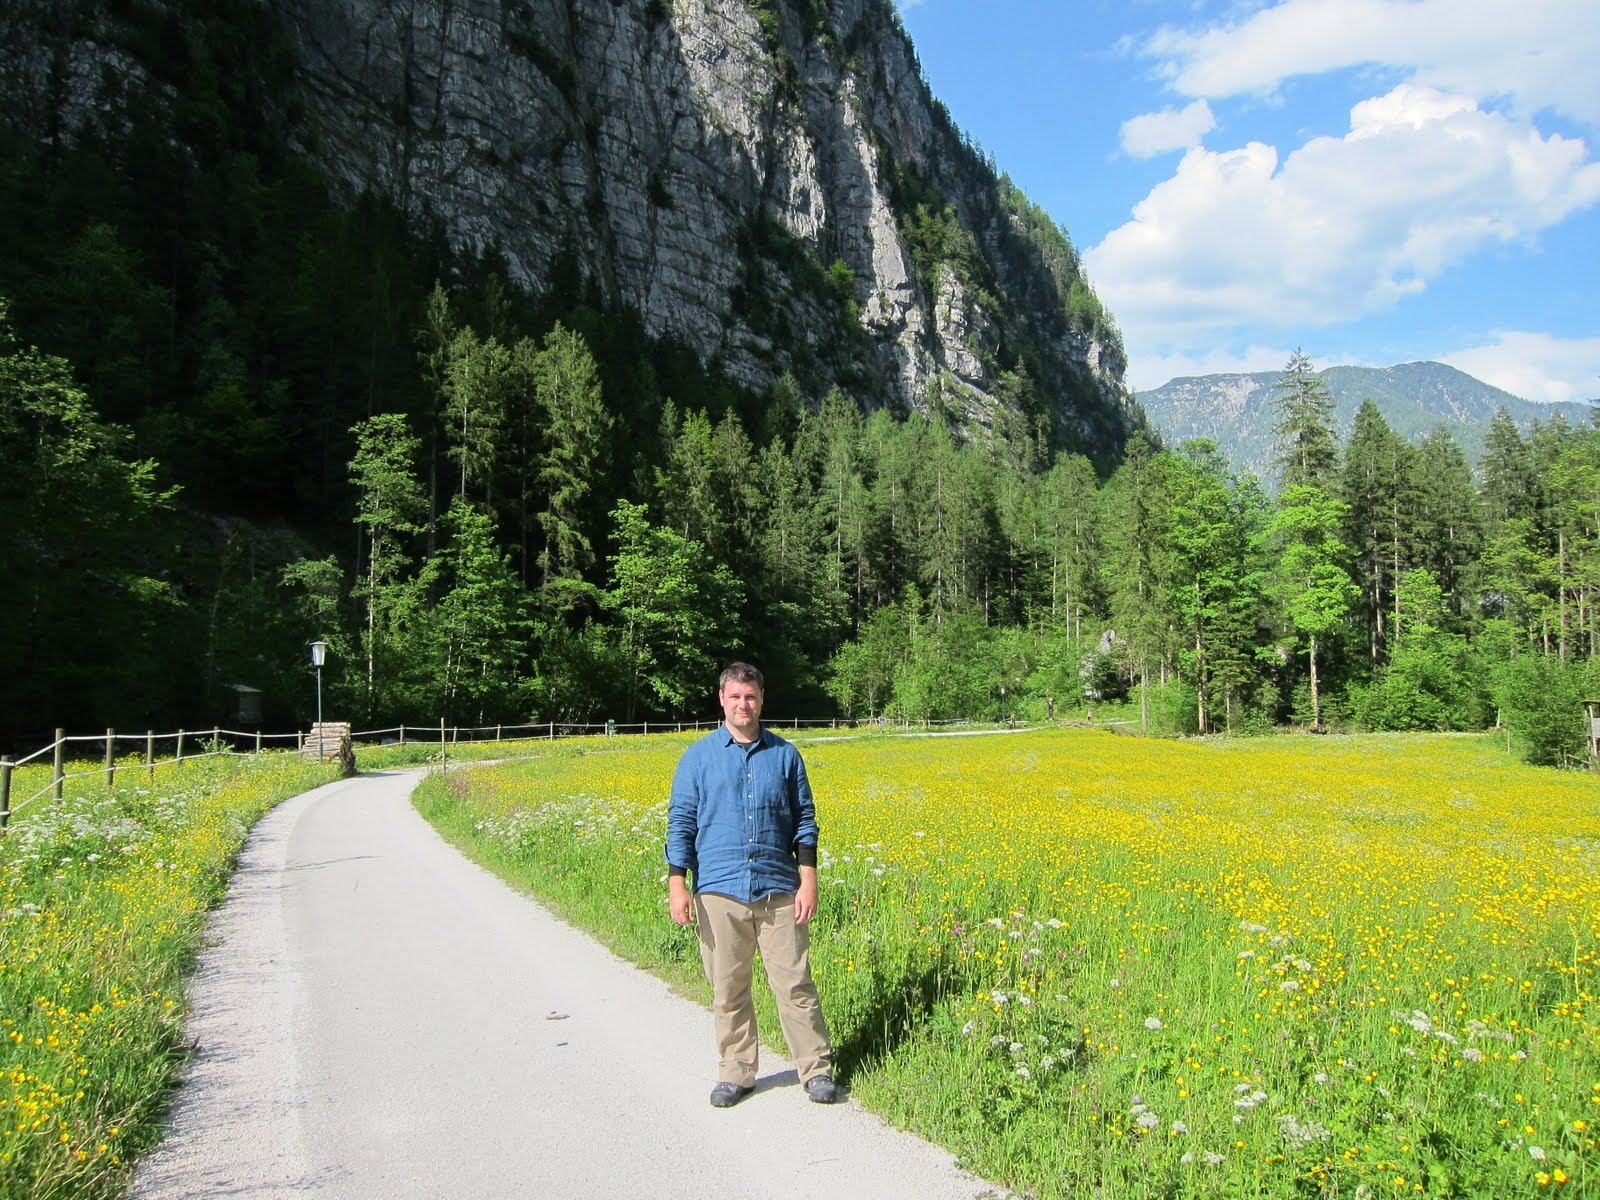 Meadow near Hallstatt